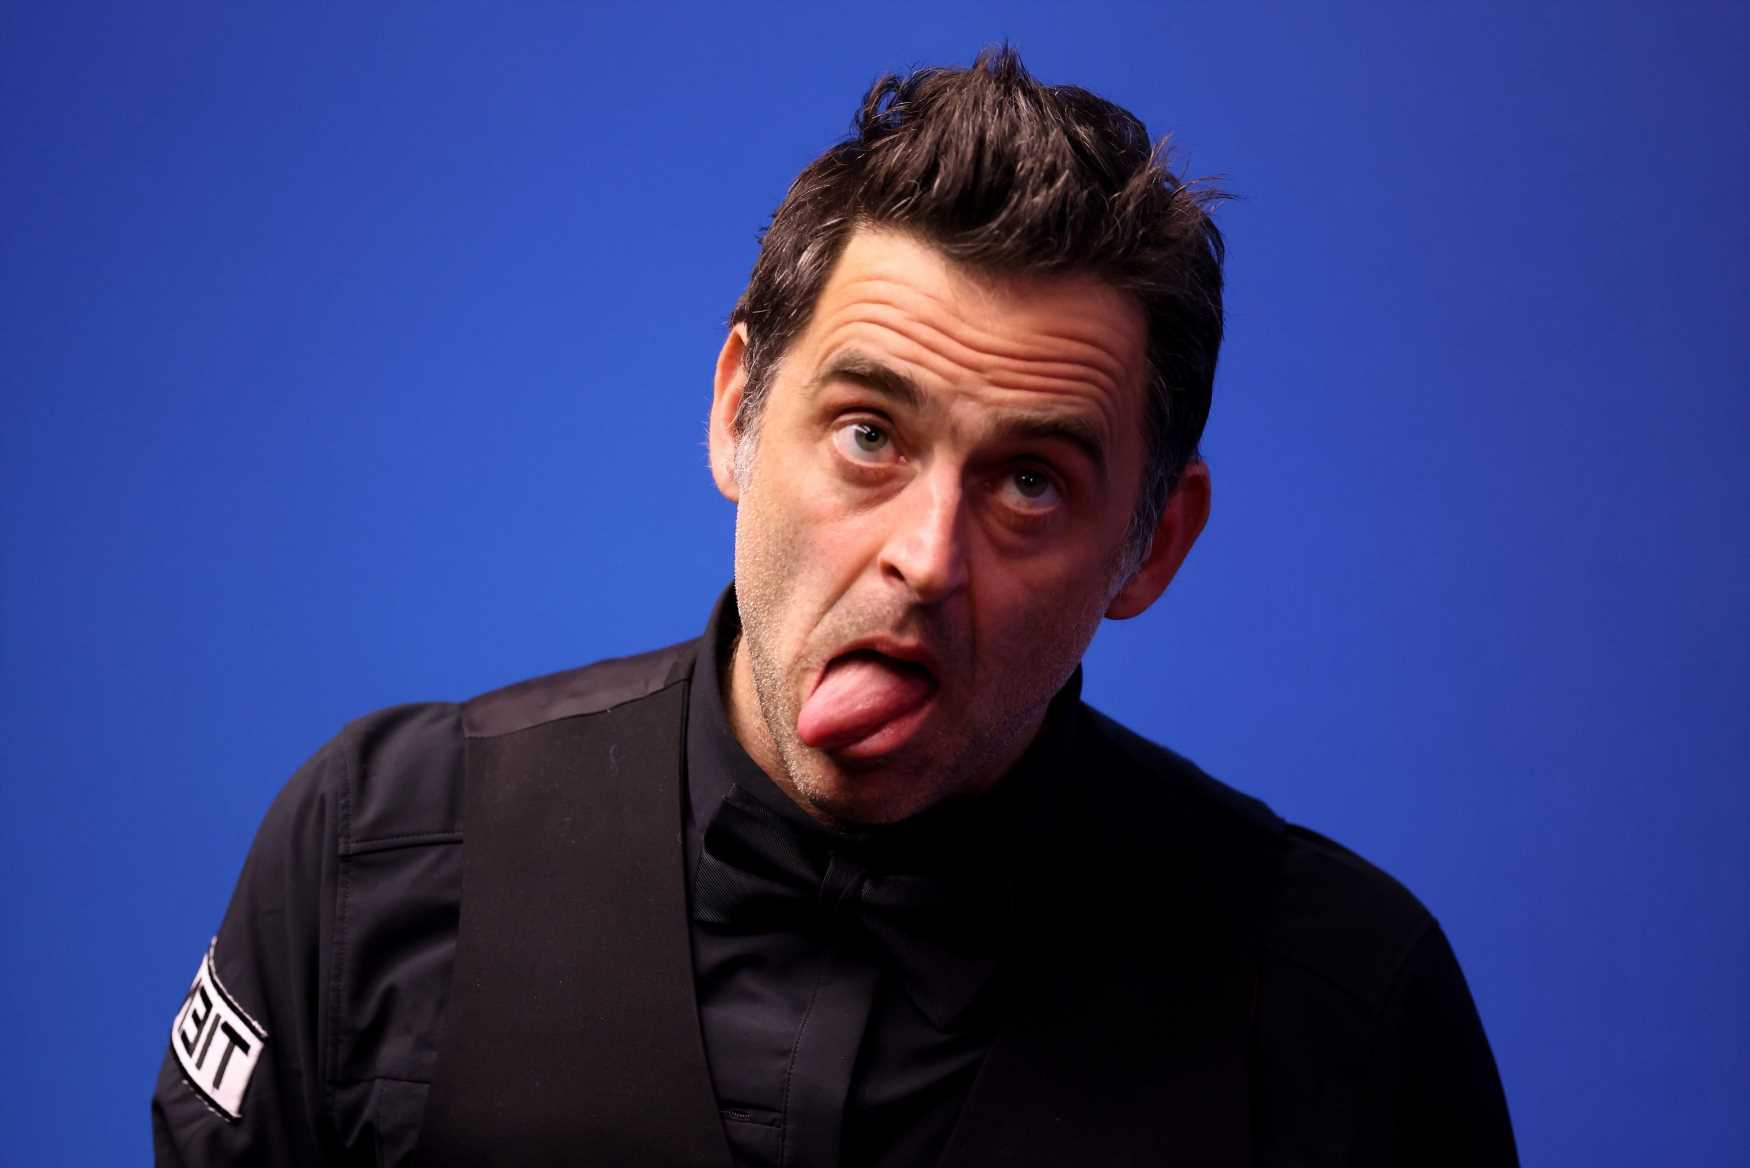 Ronnie O'Sullivan hammered 5-0 by world No 60 Hossein Vafaei in new career low for snooker icon